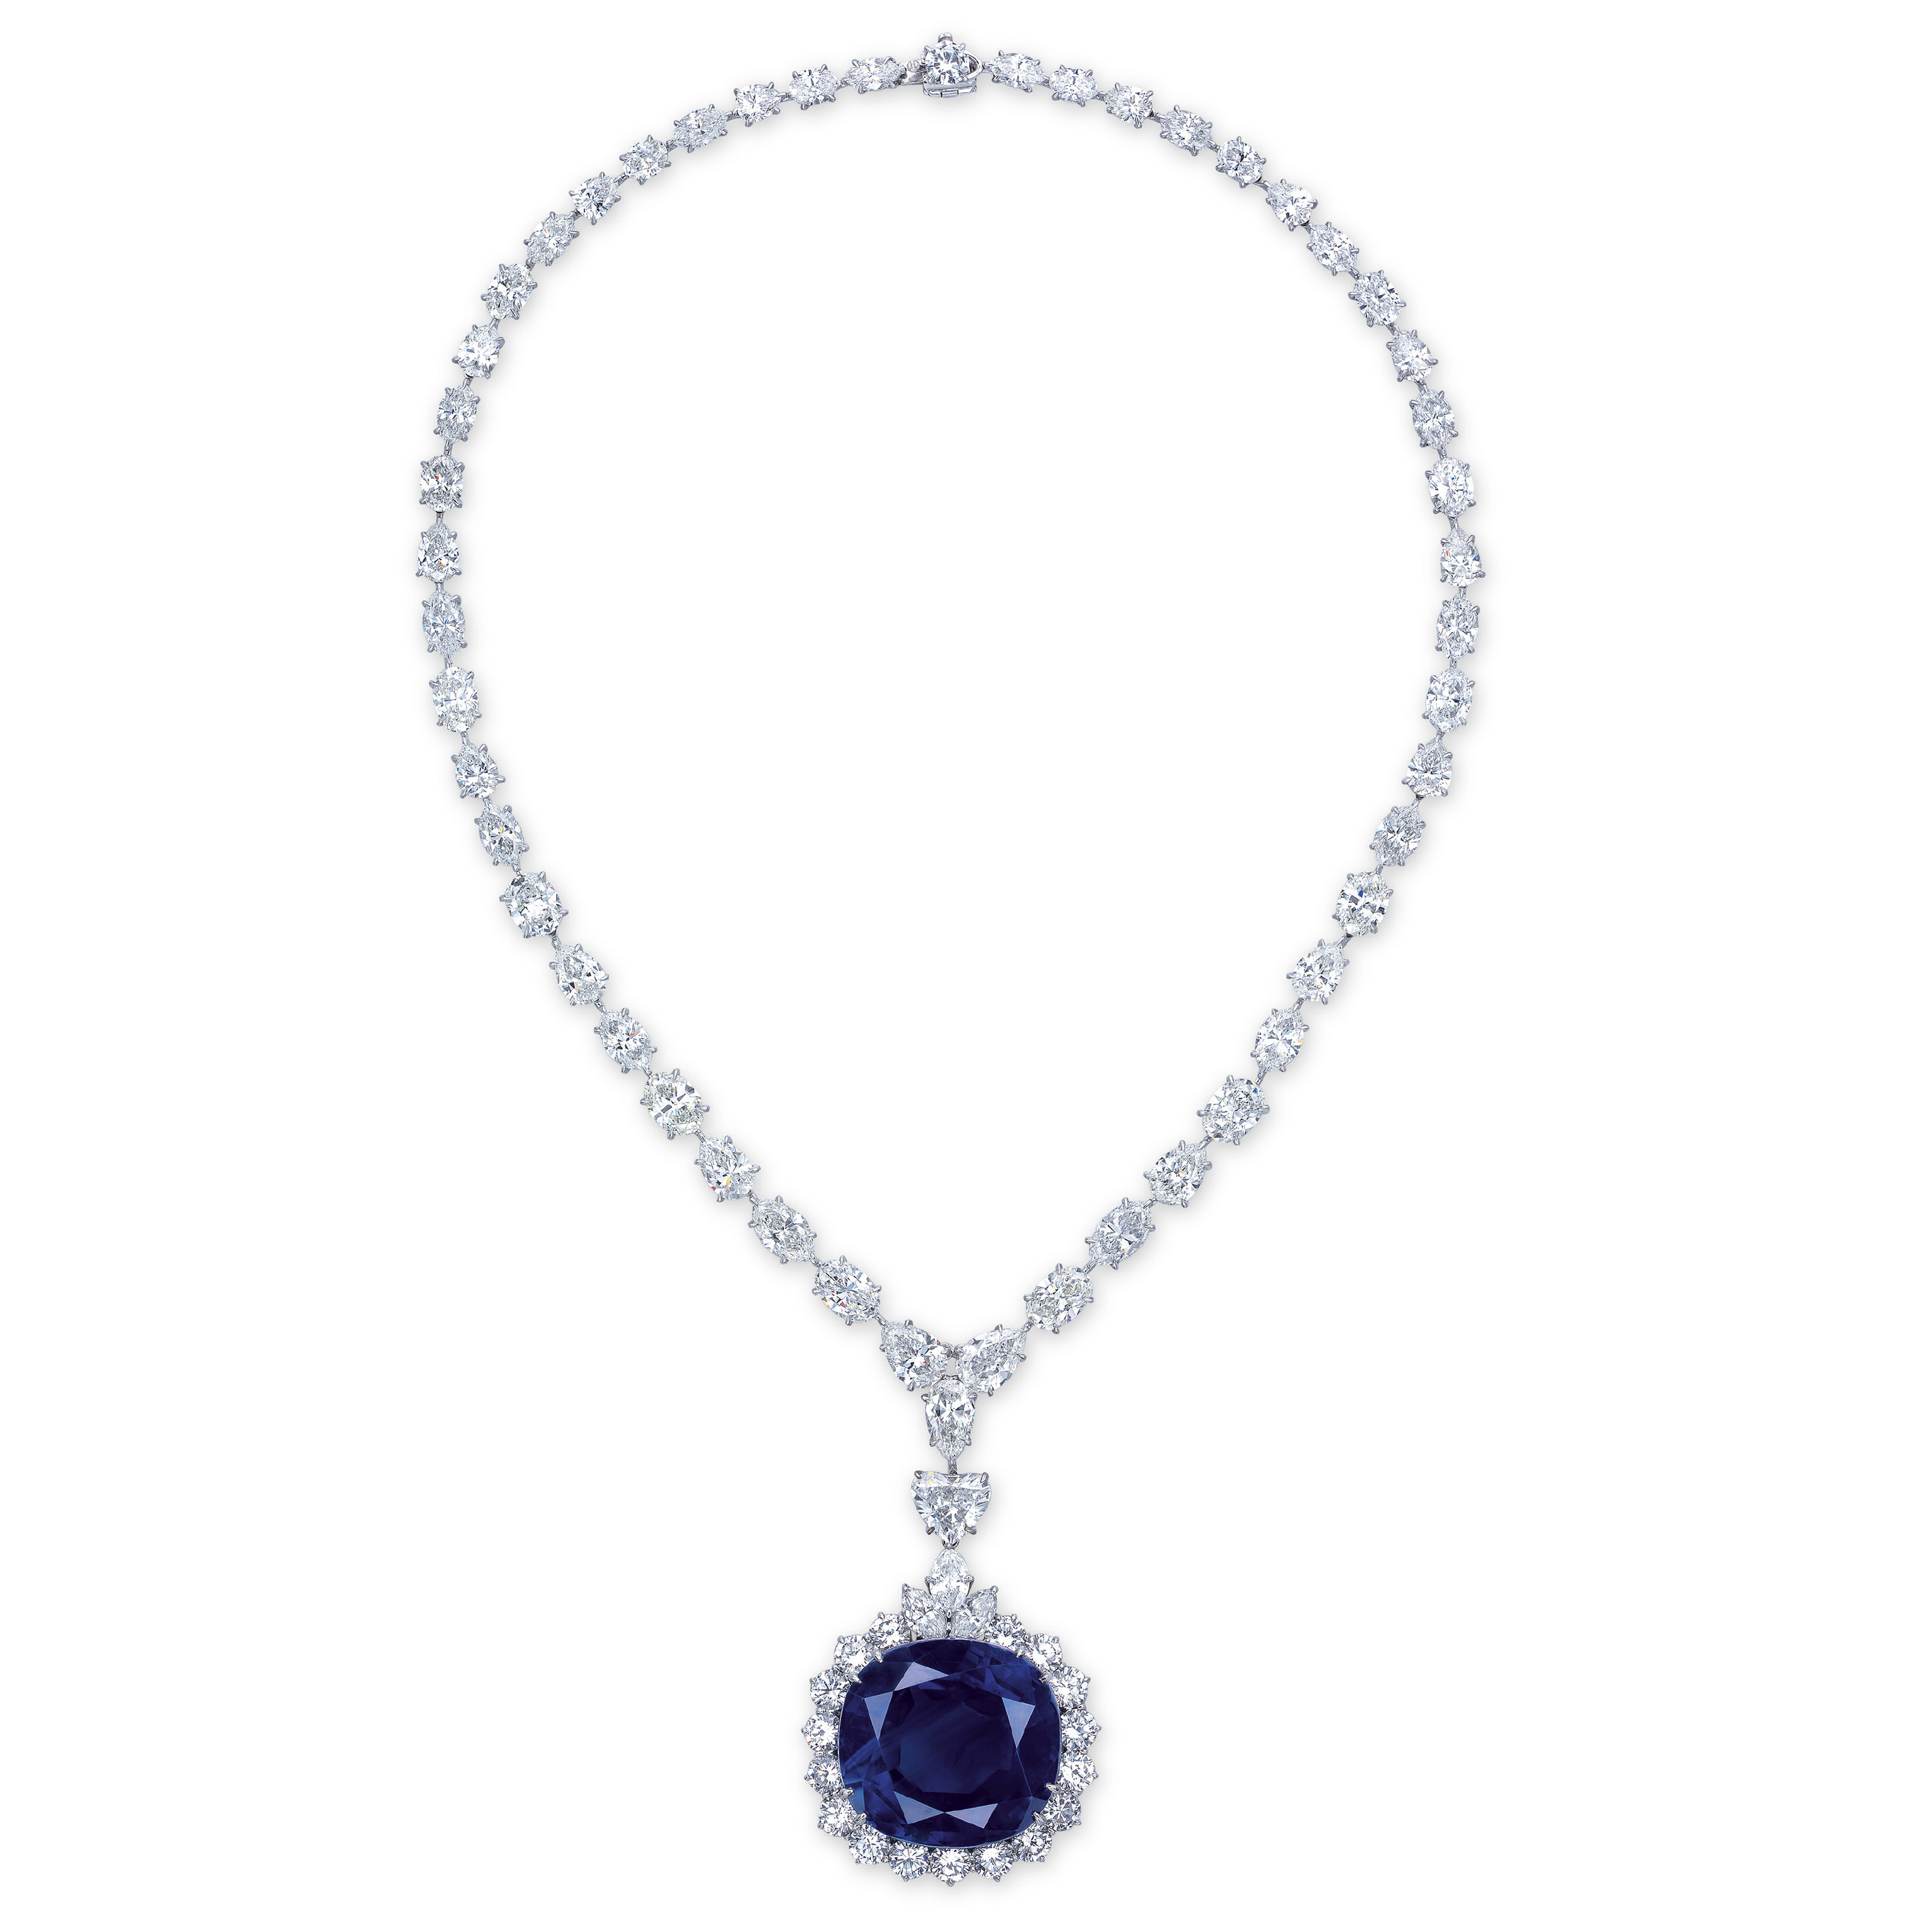 A MAGNIFICENT SAPPHIRE AND DIAMOND PENDANT NECKLACE, BY CHATILA